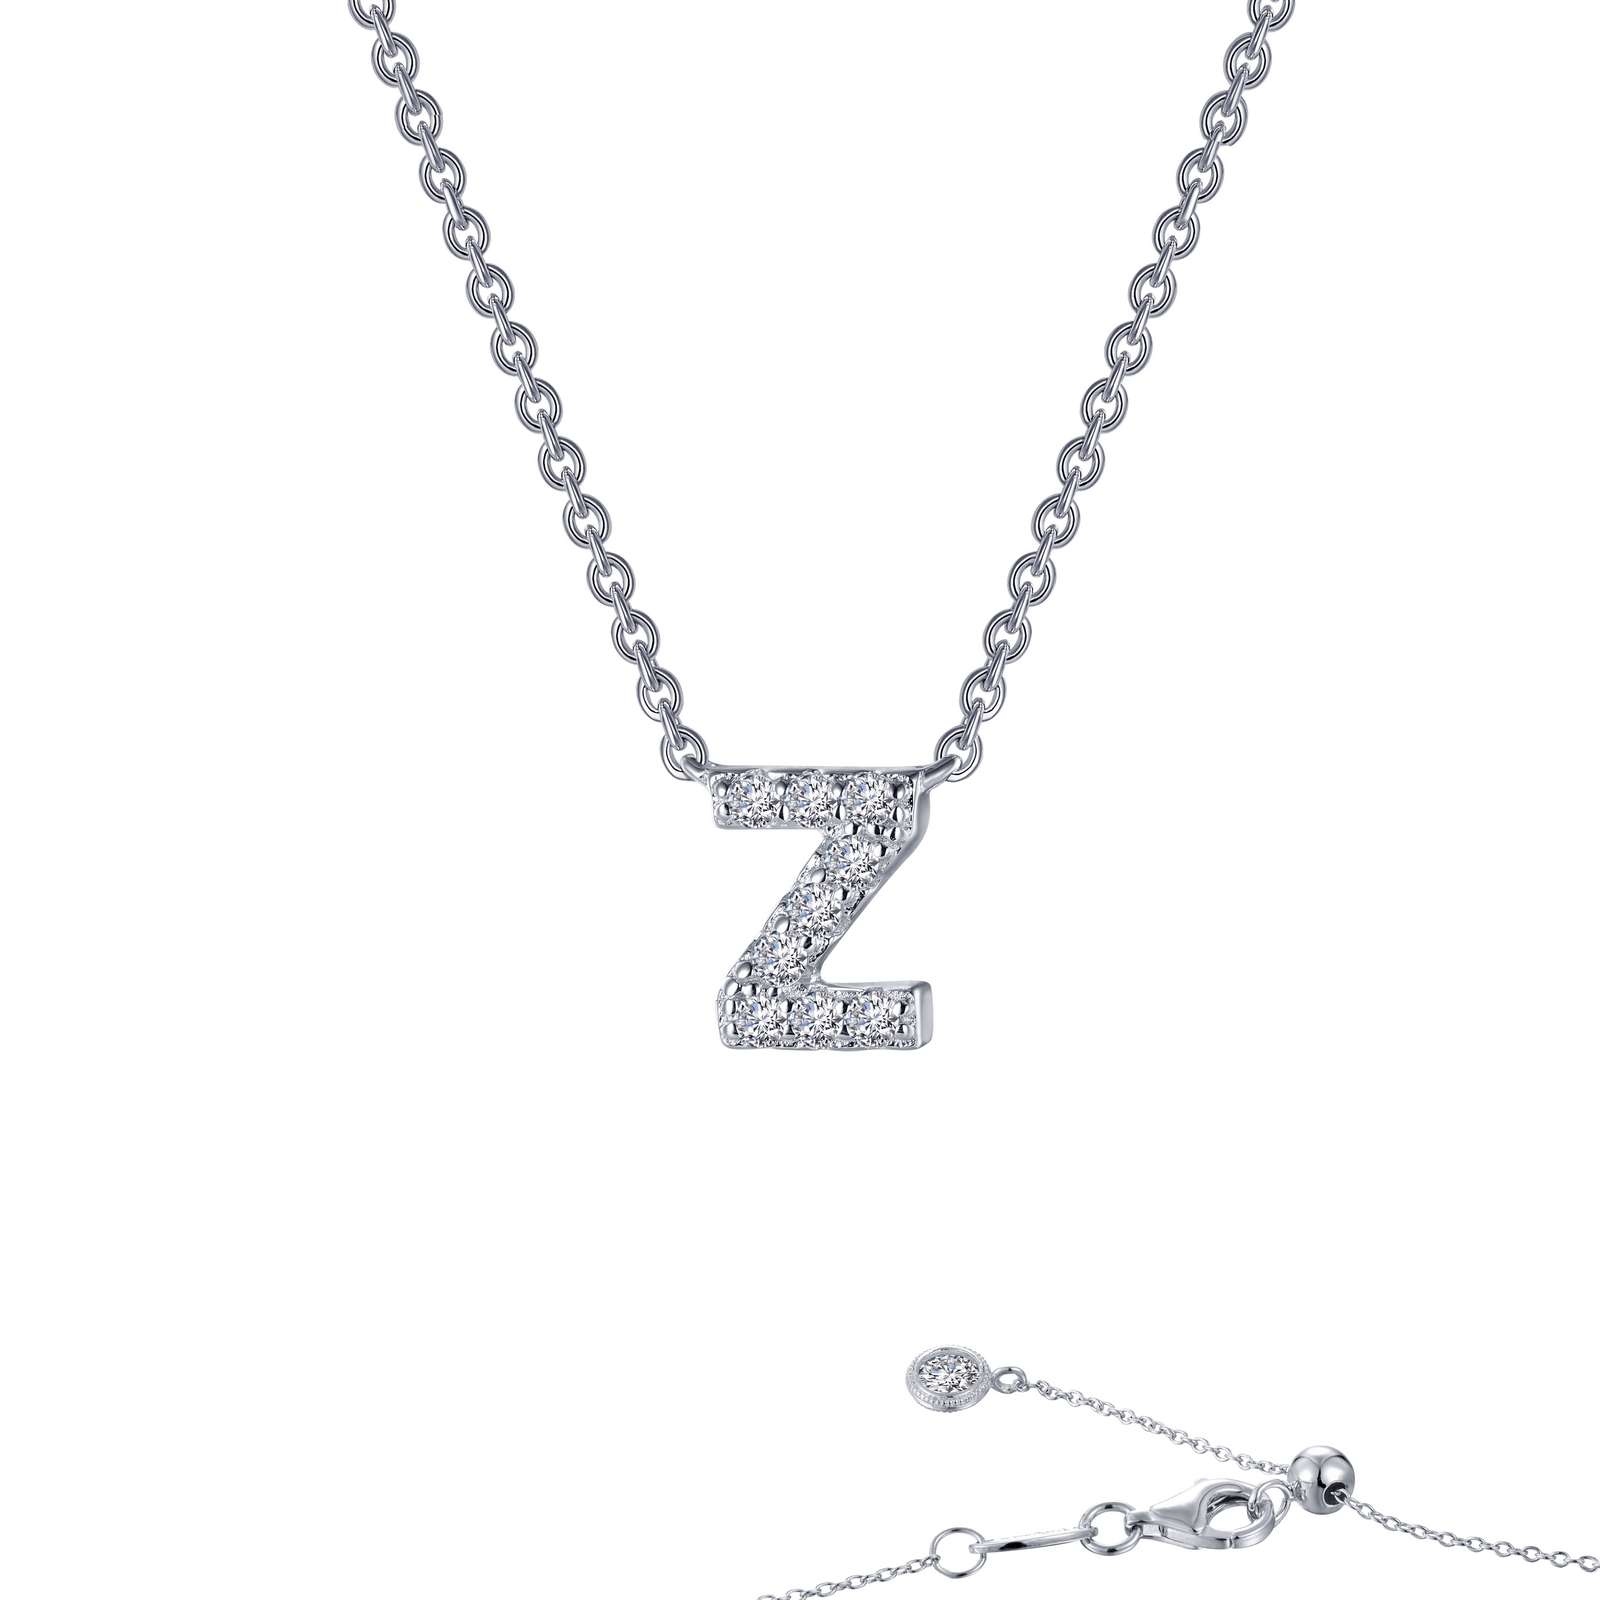 Shop dazzling designer pendants at R. Gregory Jewelers in North Carolina. Our family owned and operated business can help you choose the perfect pendant for you or a loved one.